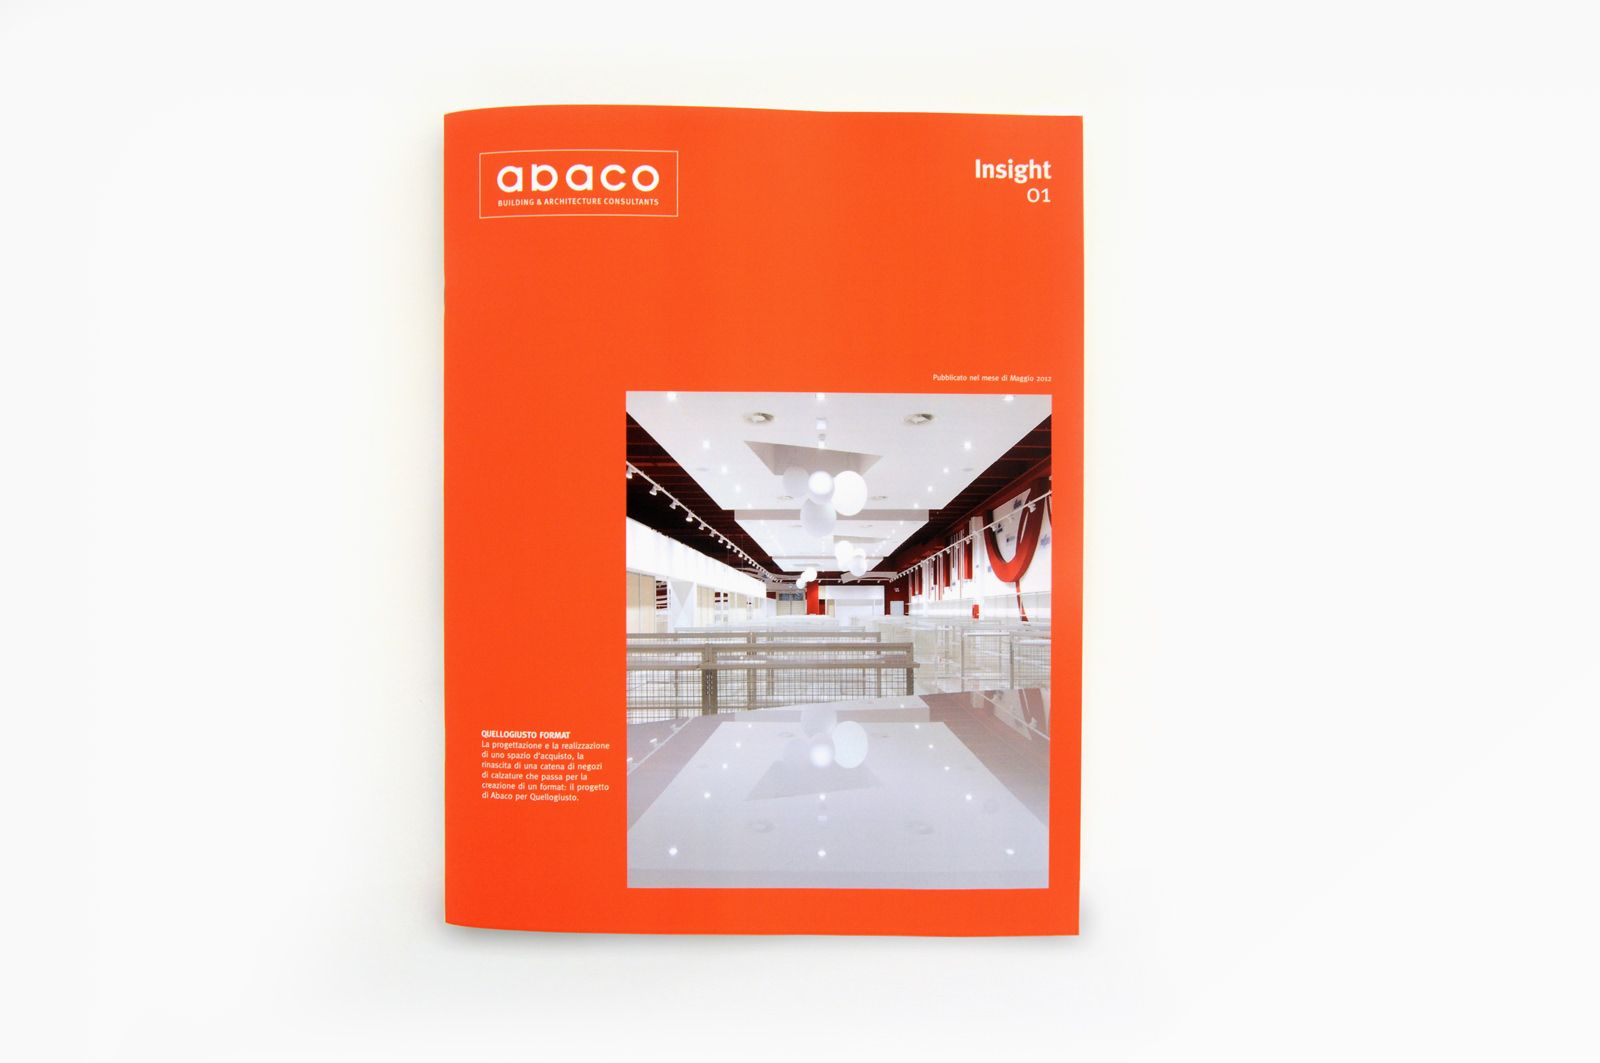 CASE STUDY 08 / Abaco. Copyright (C) Tessari Associati S.r.l. all rights reserved.